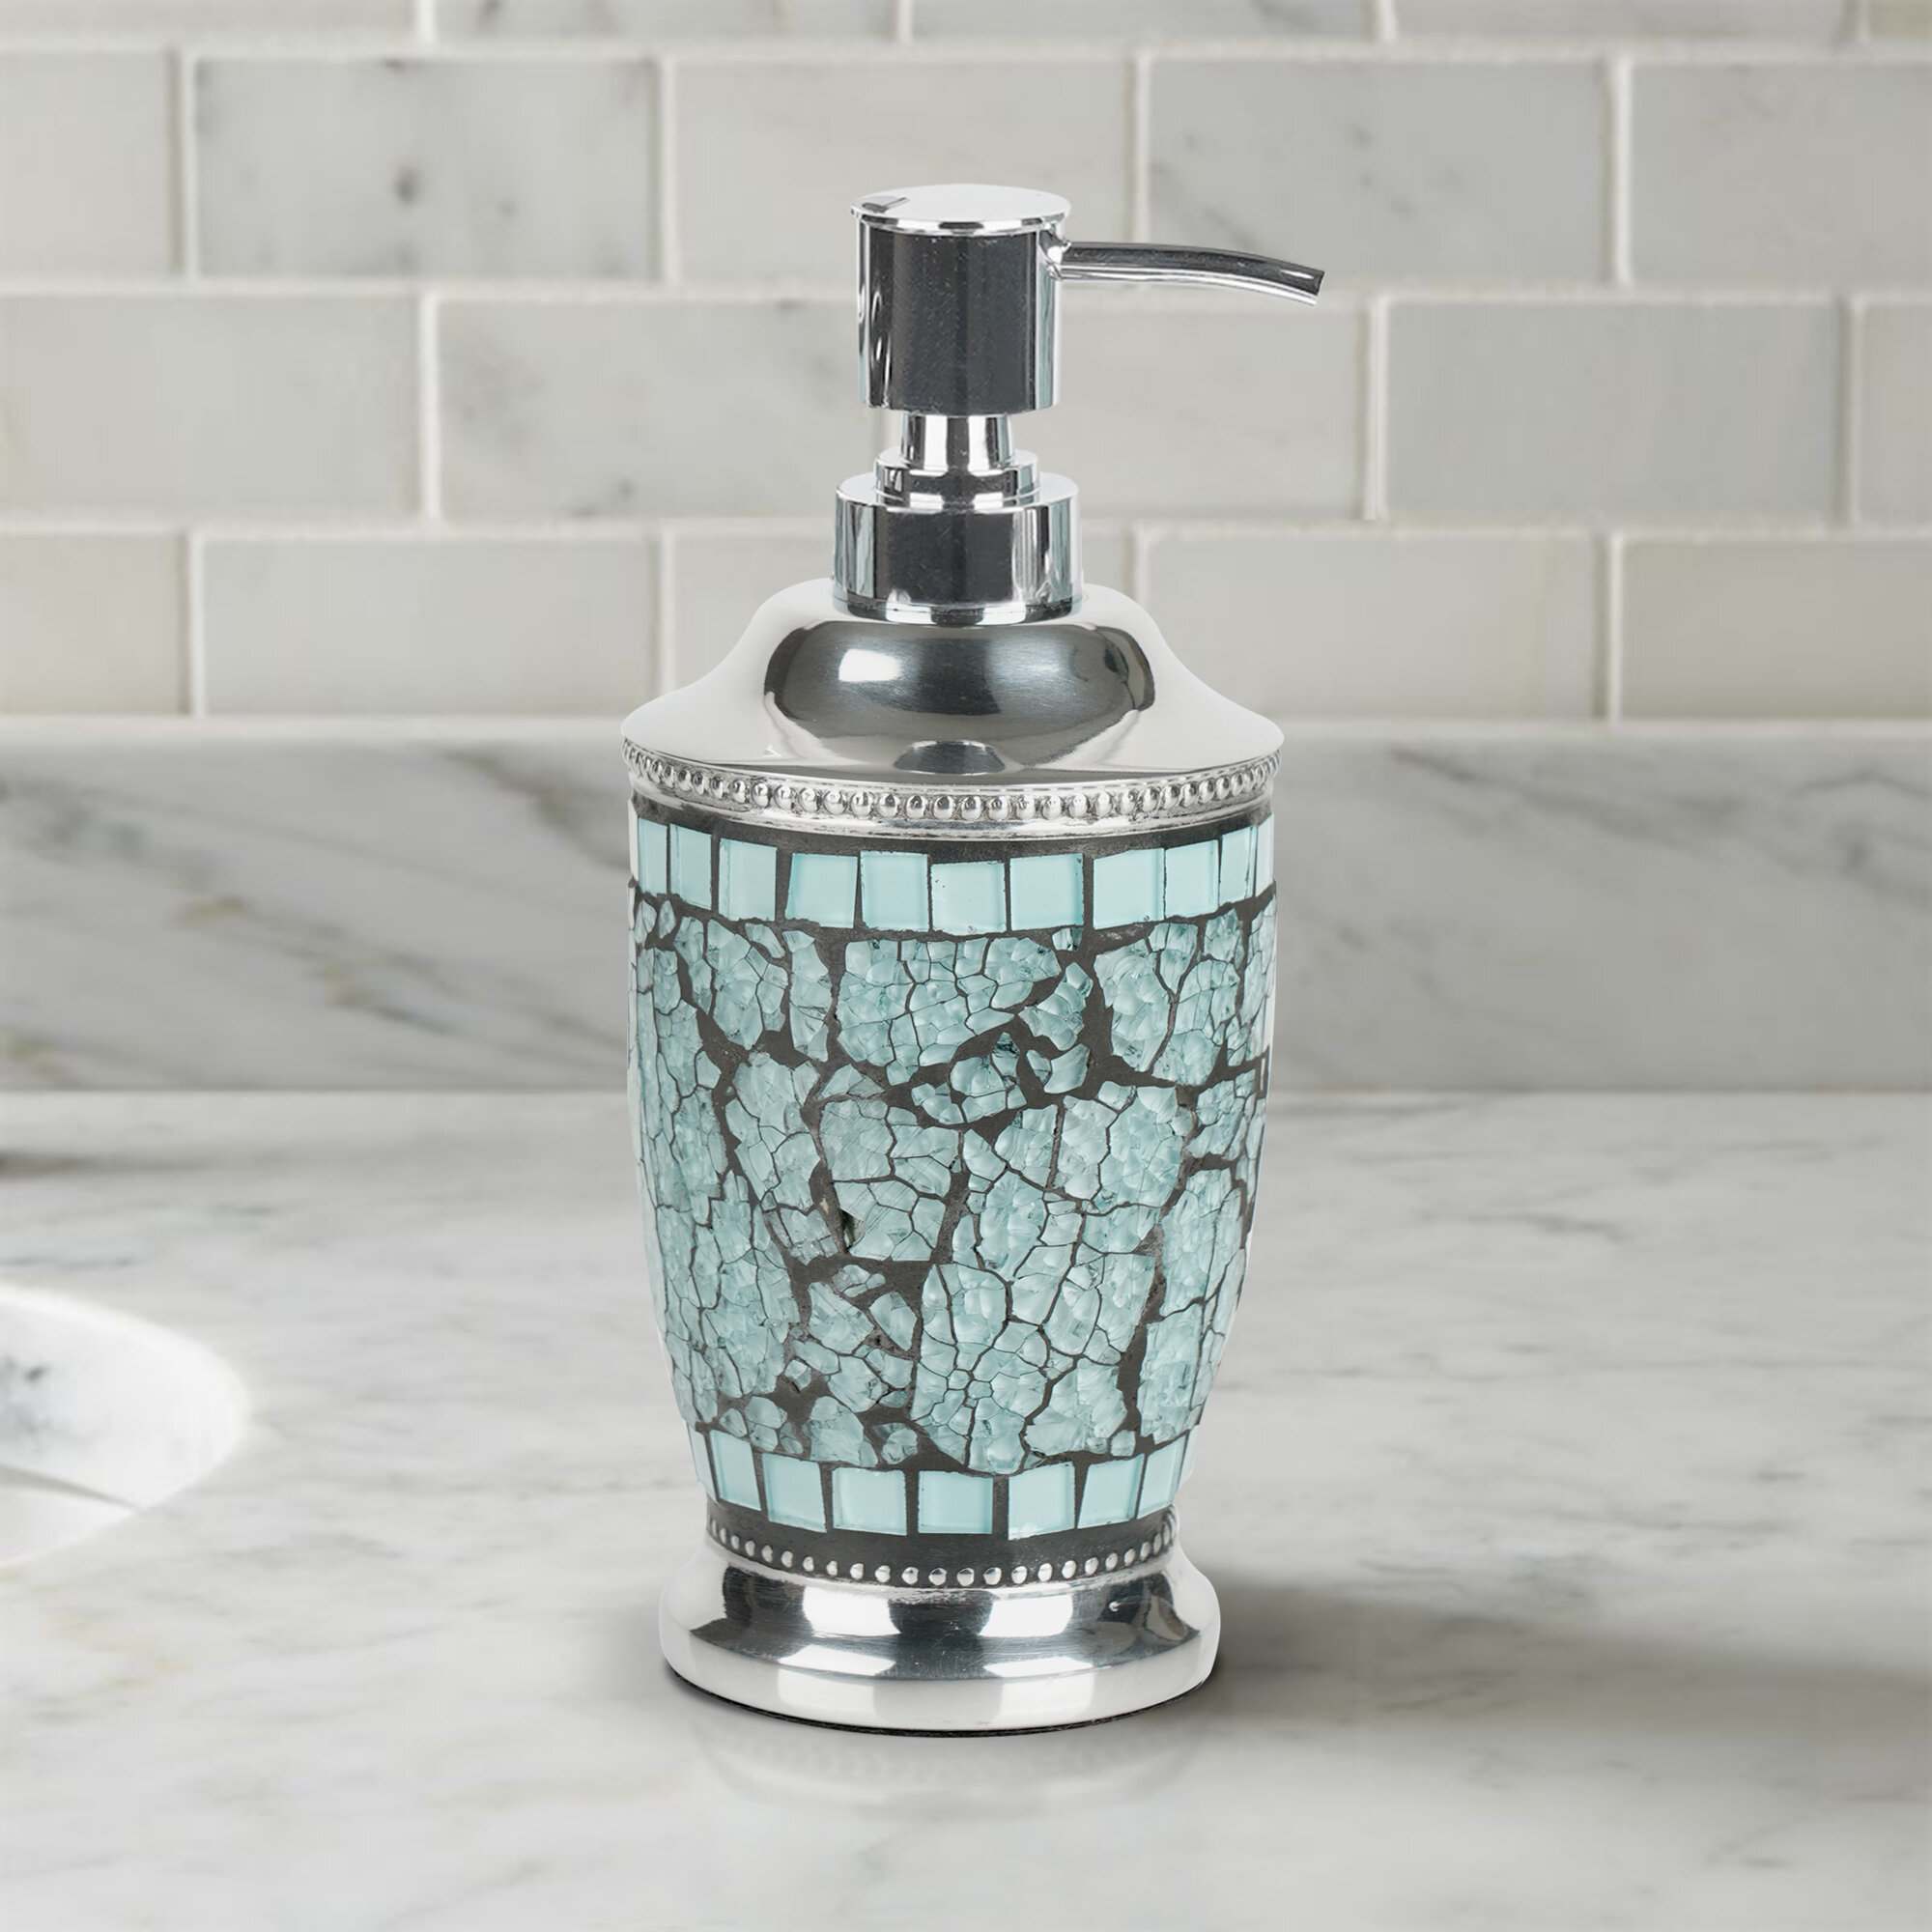 Rosdorf Park Burna Soap Dispenser Reviews Wayfair